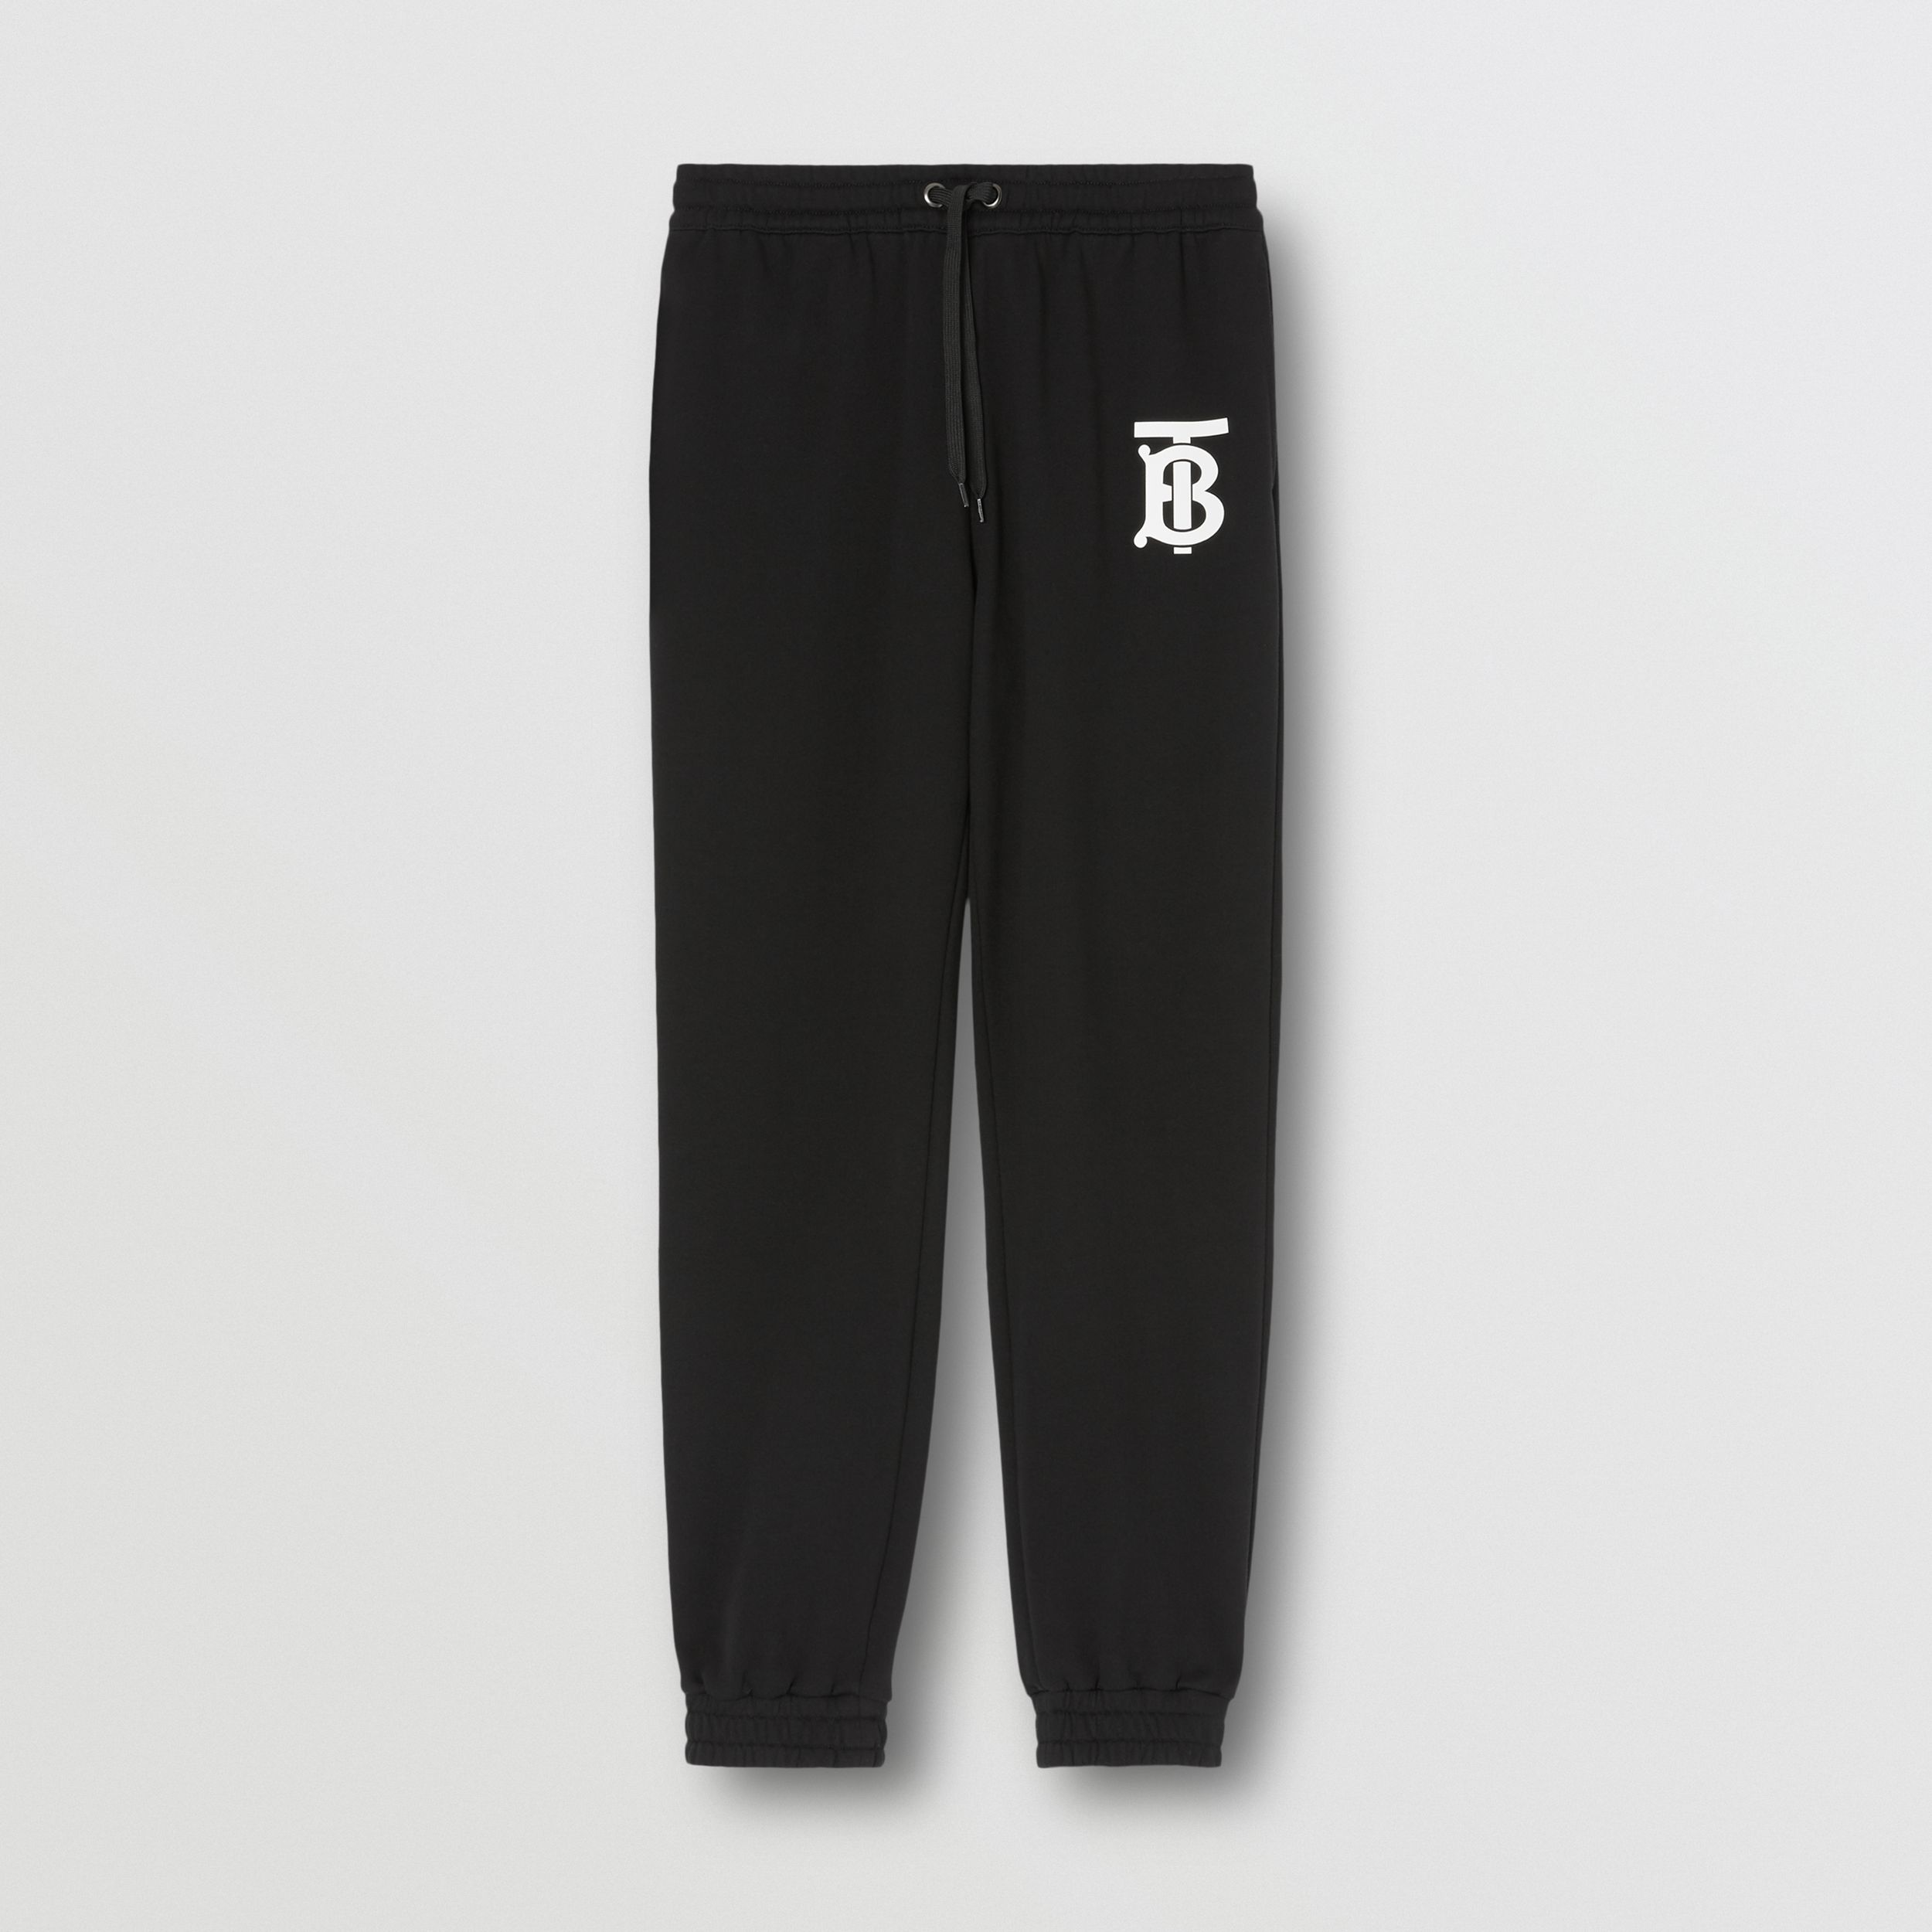 Monogram Motif Cotton Jogging Pants in Black - Men | Burberry - 4